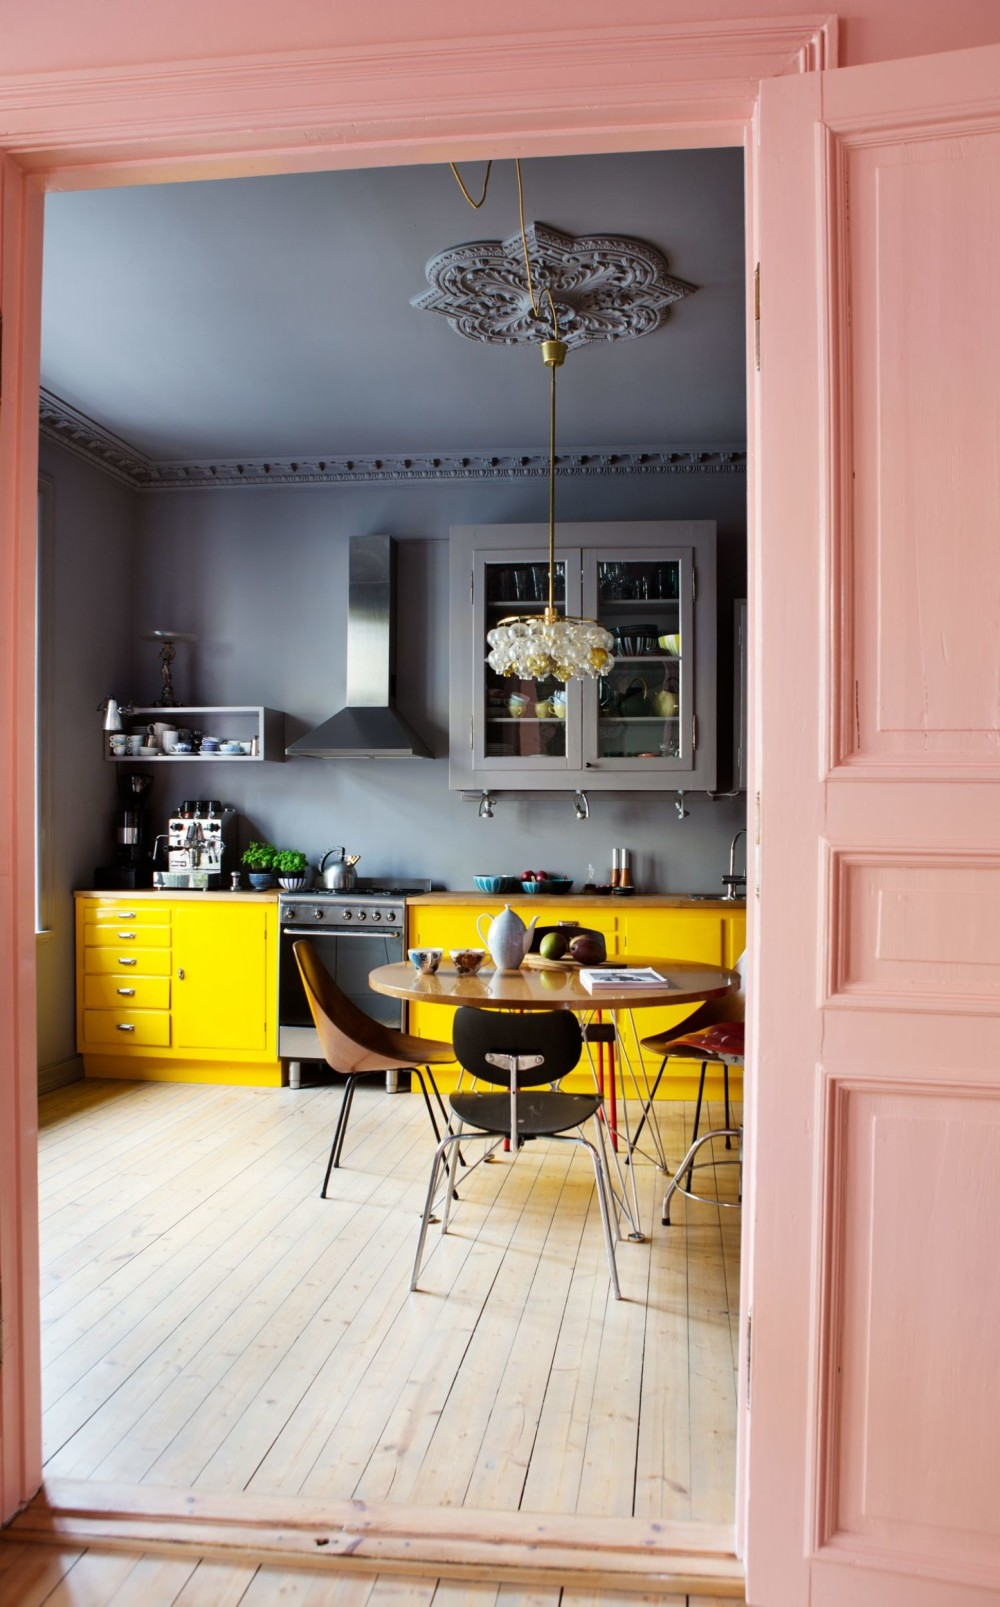 The dark grey and pink doors might be fairly calm colours but that bright pink really makes it pop, doesn't it? You don't see that colour often in a kitchen | photo by  Yvonne Wilhelmsen